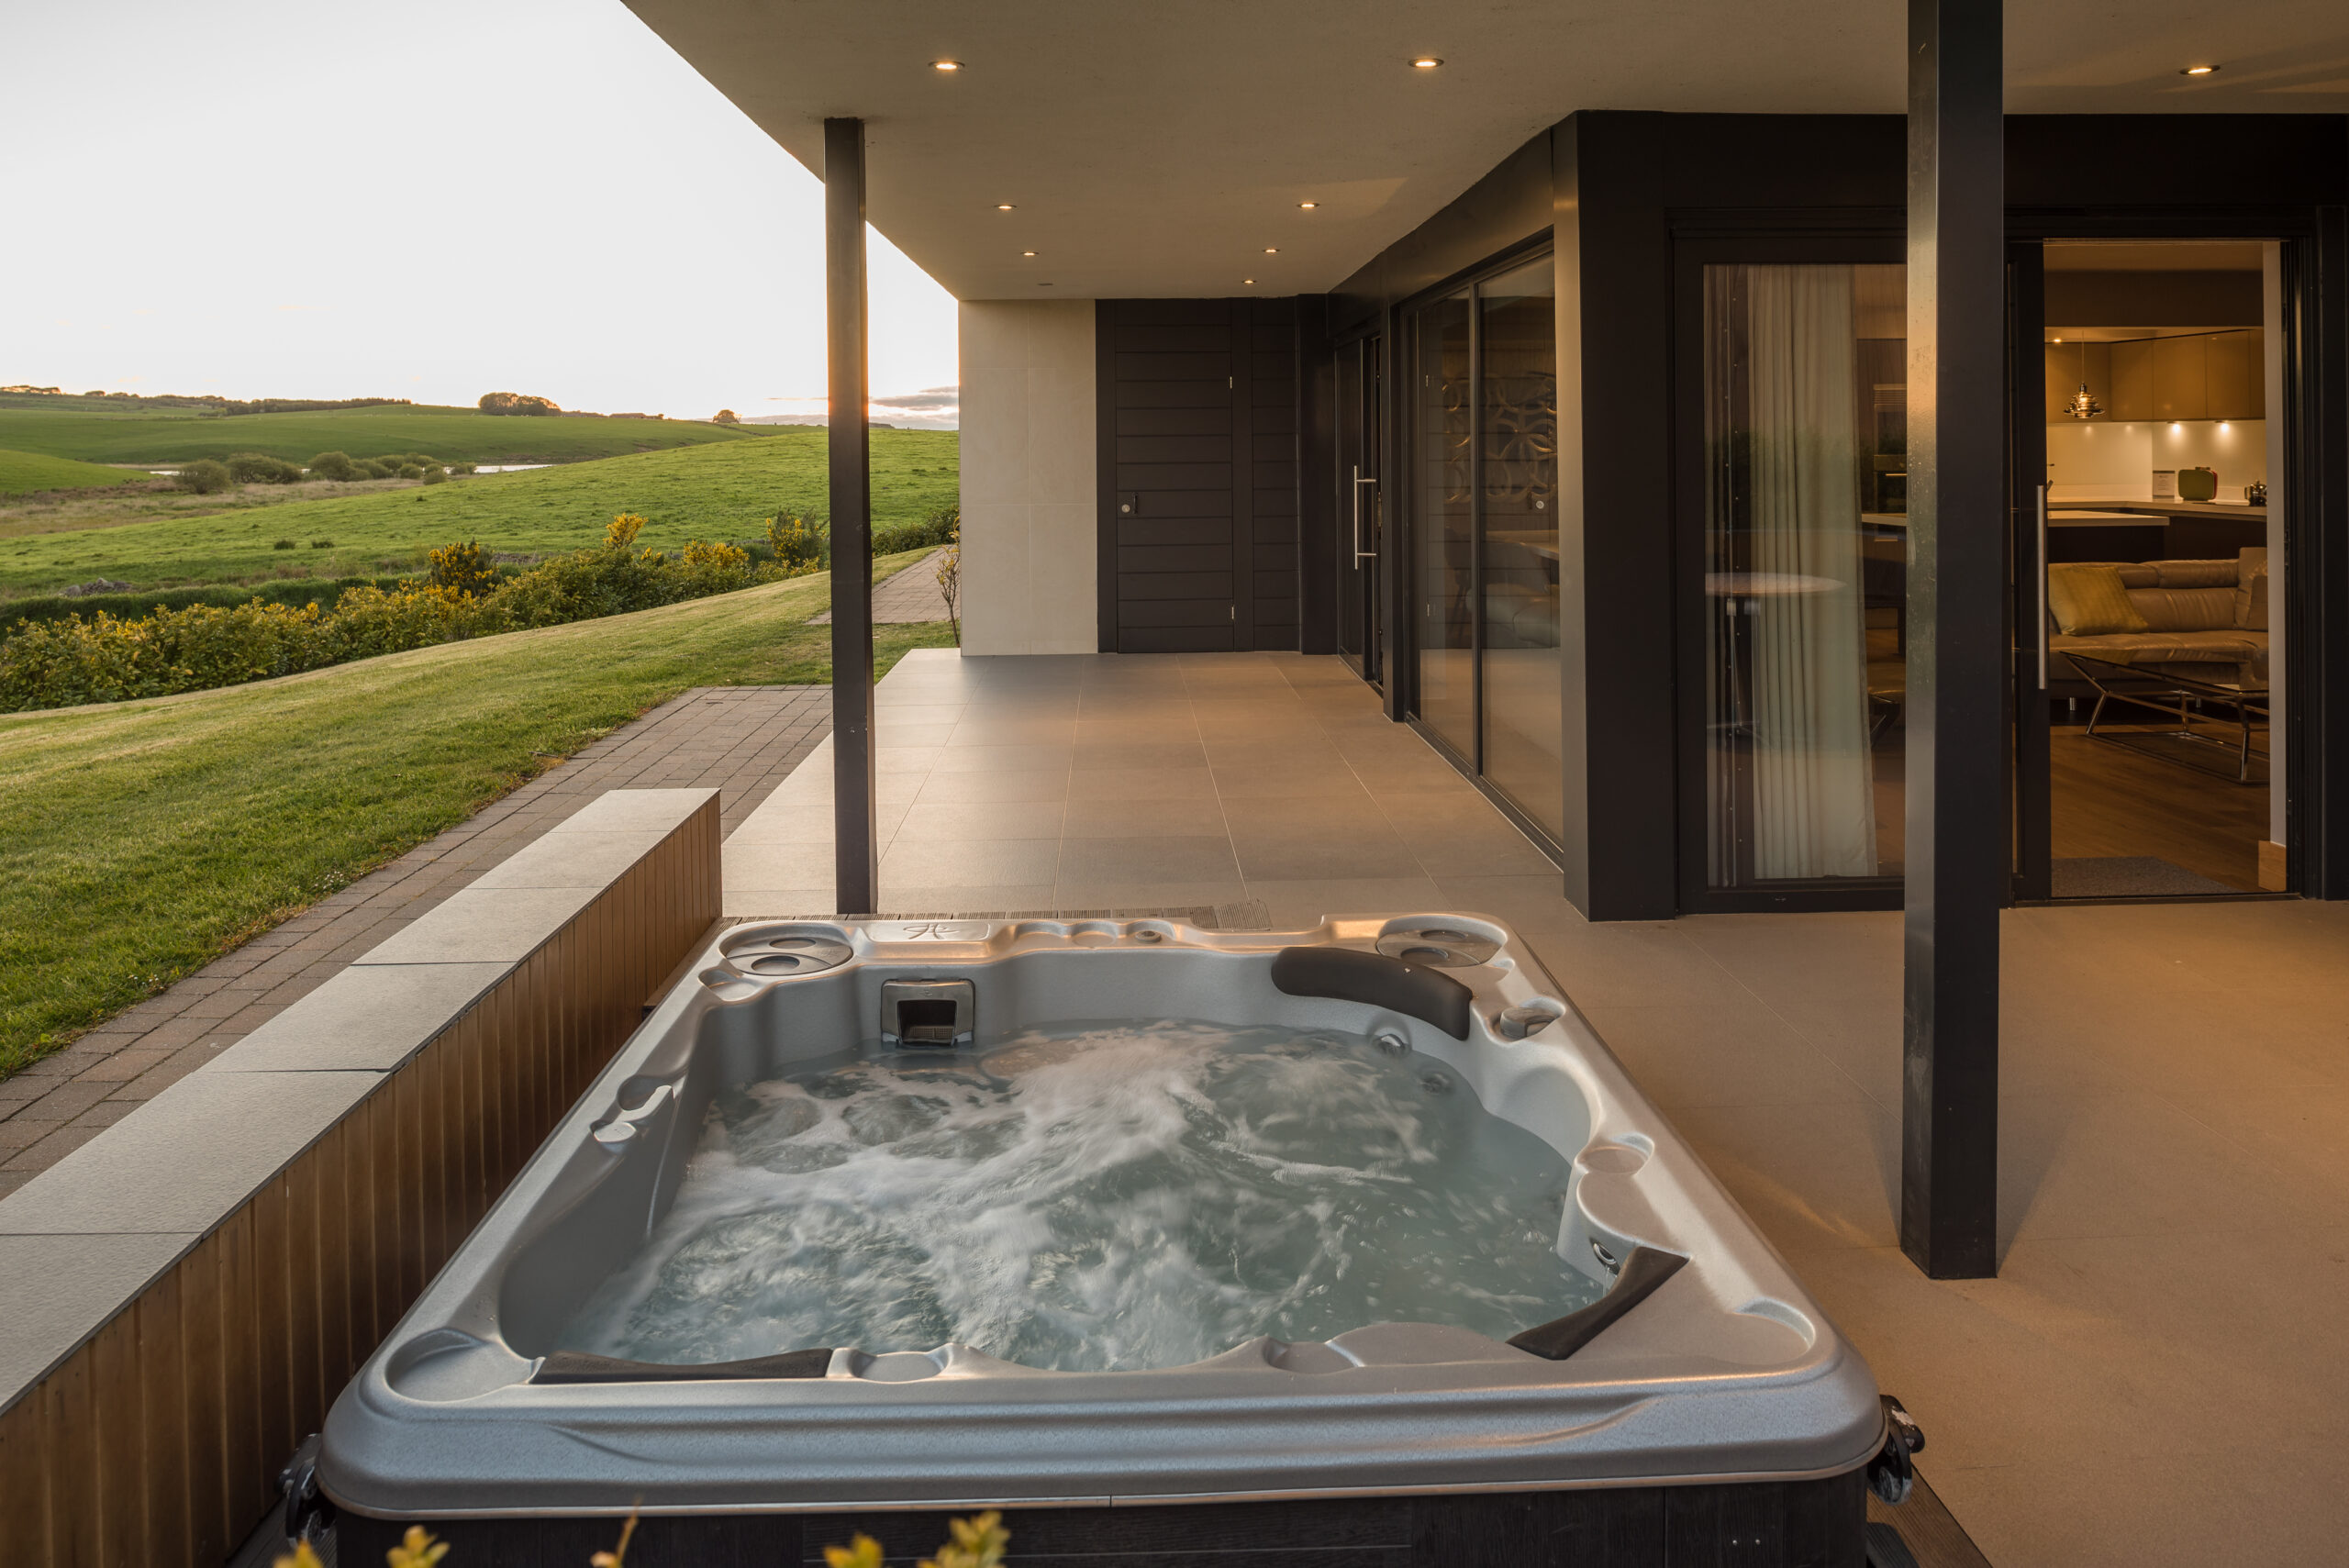 Lochside hot tub after Quoin lighting and post-production